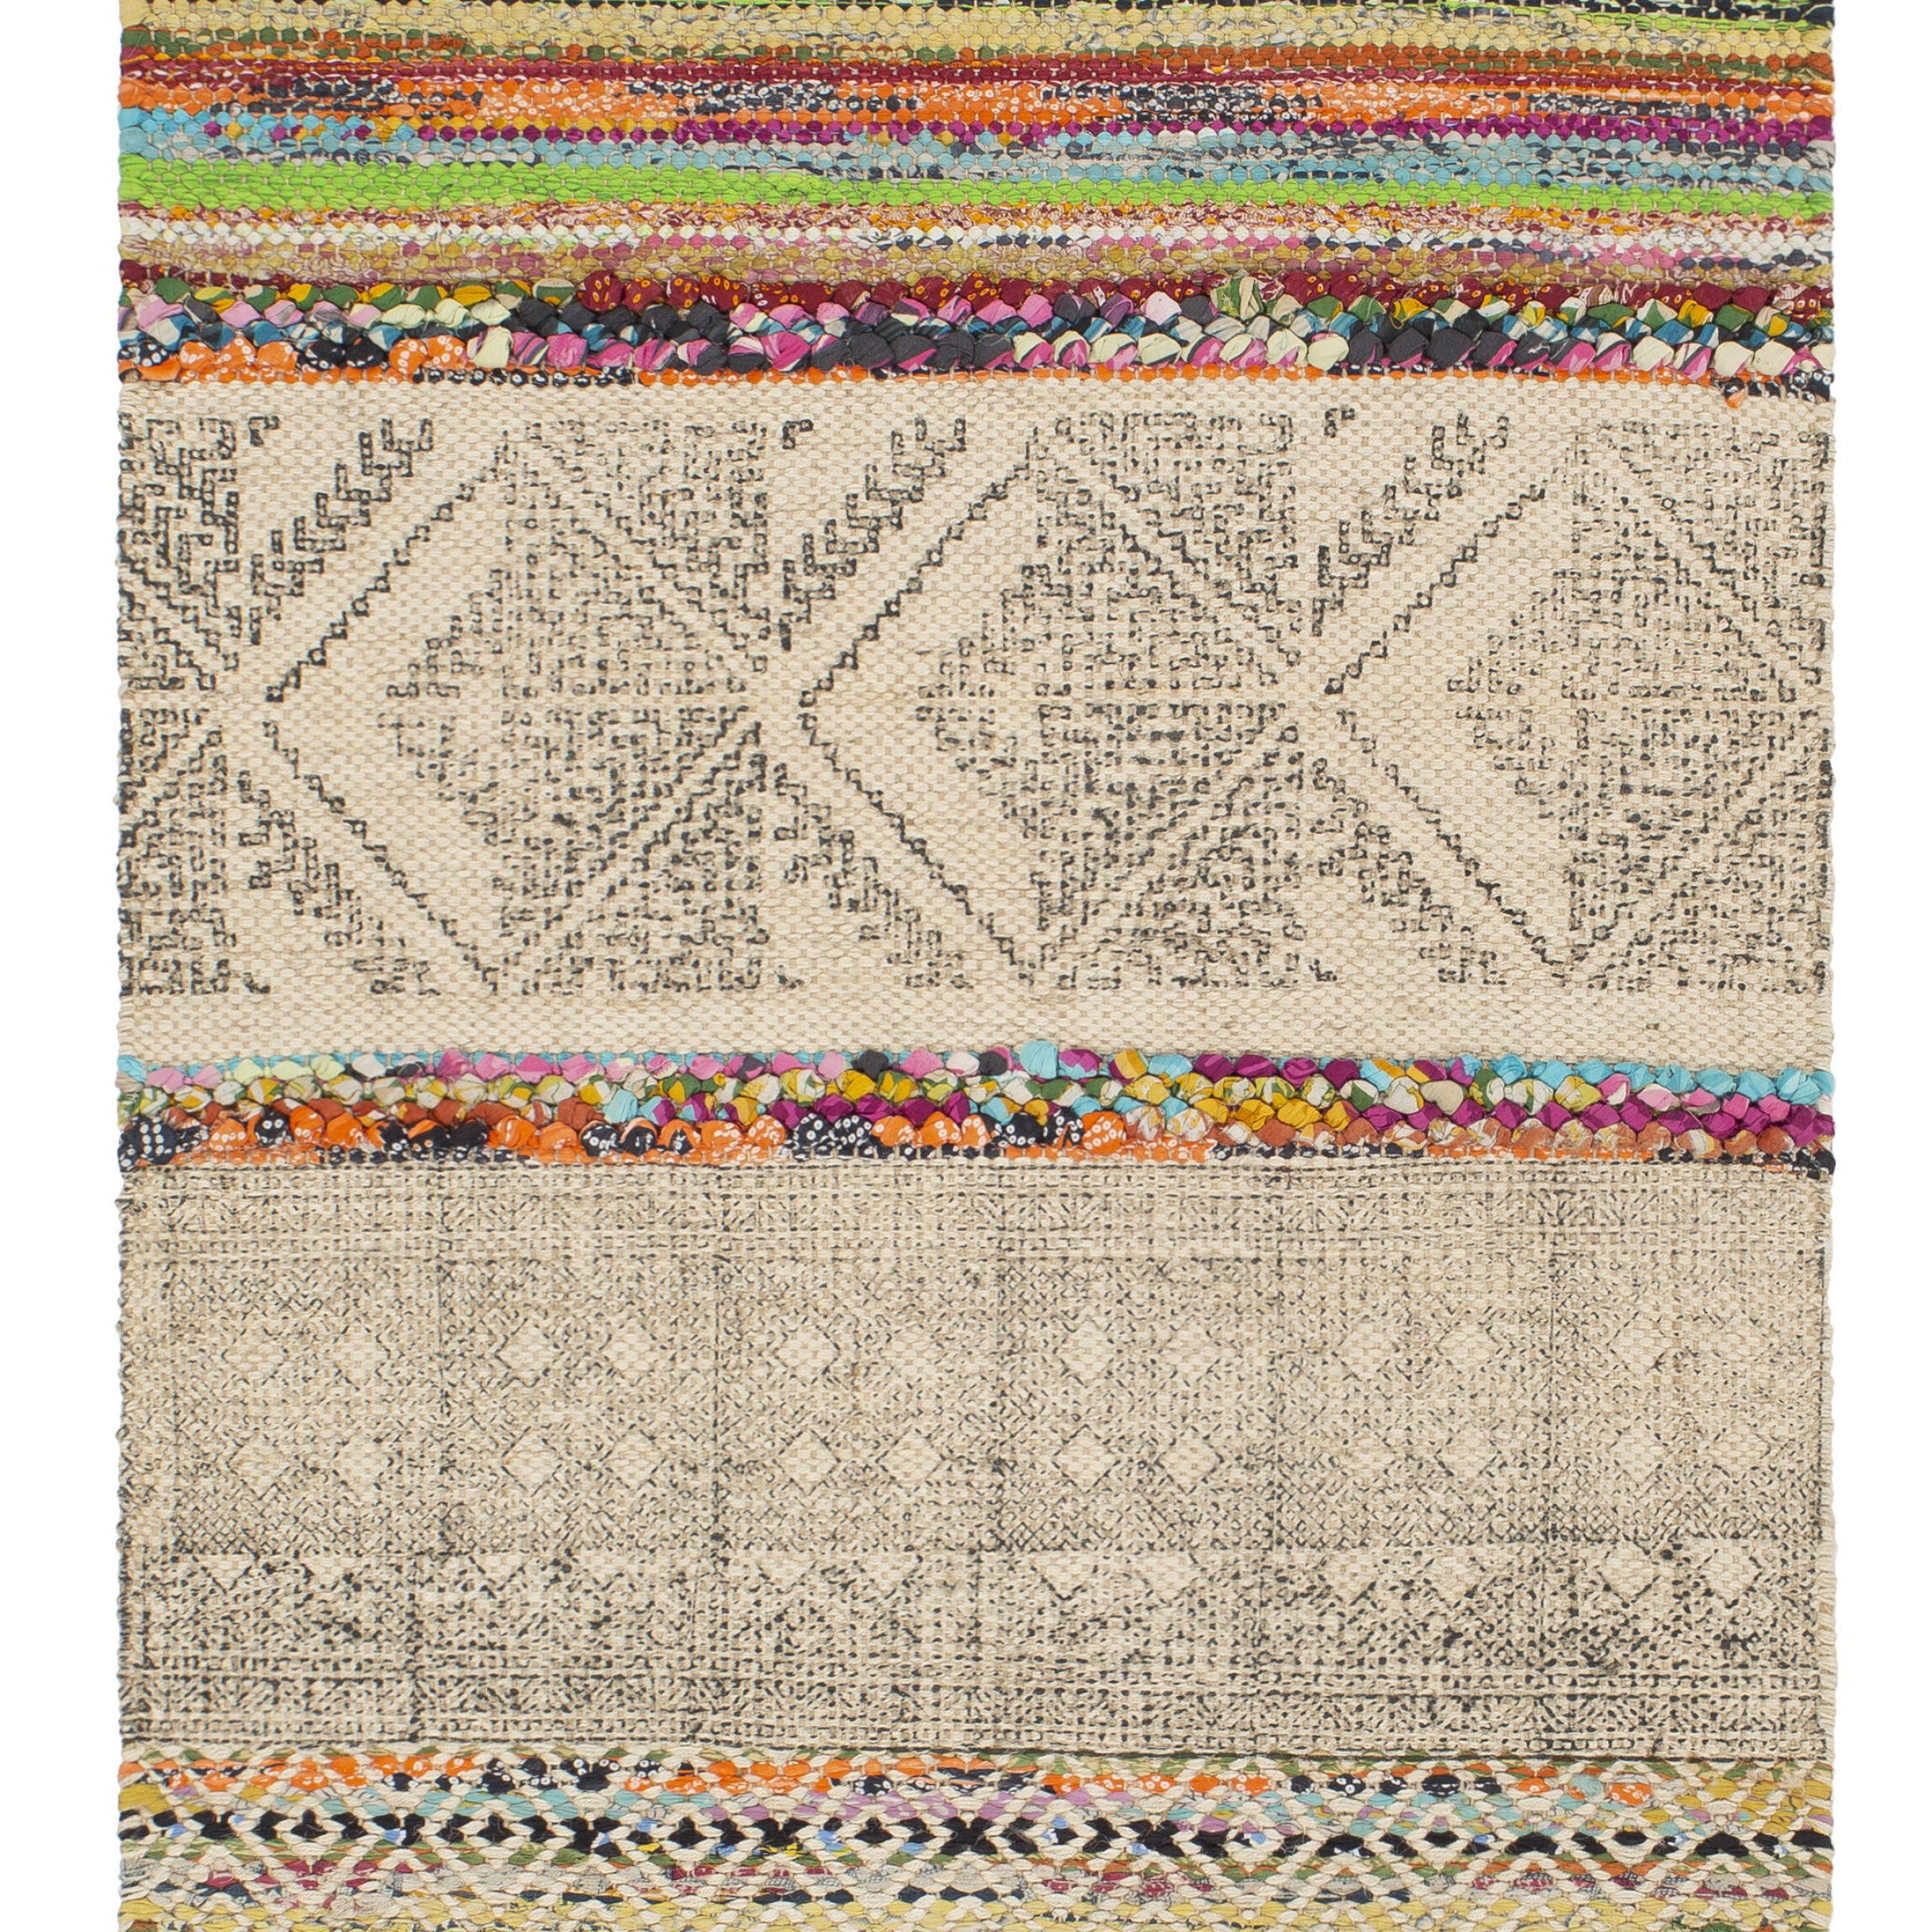 Rod Tan Tapestries You'll Love In 2021 | Wayfair Inside Most Current Blended Fabric Teresina Wool And Viscose Wall Hangings With Hanging Accessories Included (View 9 of 20)